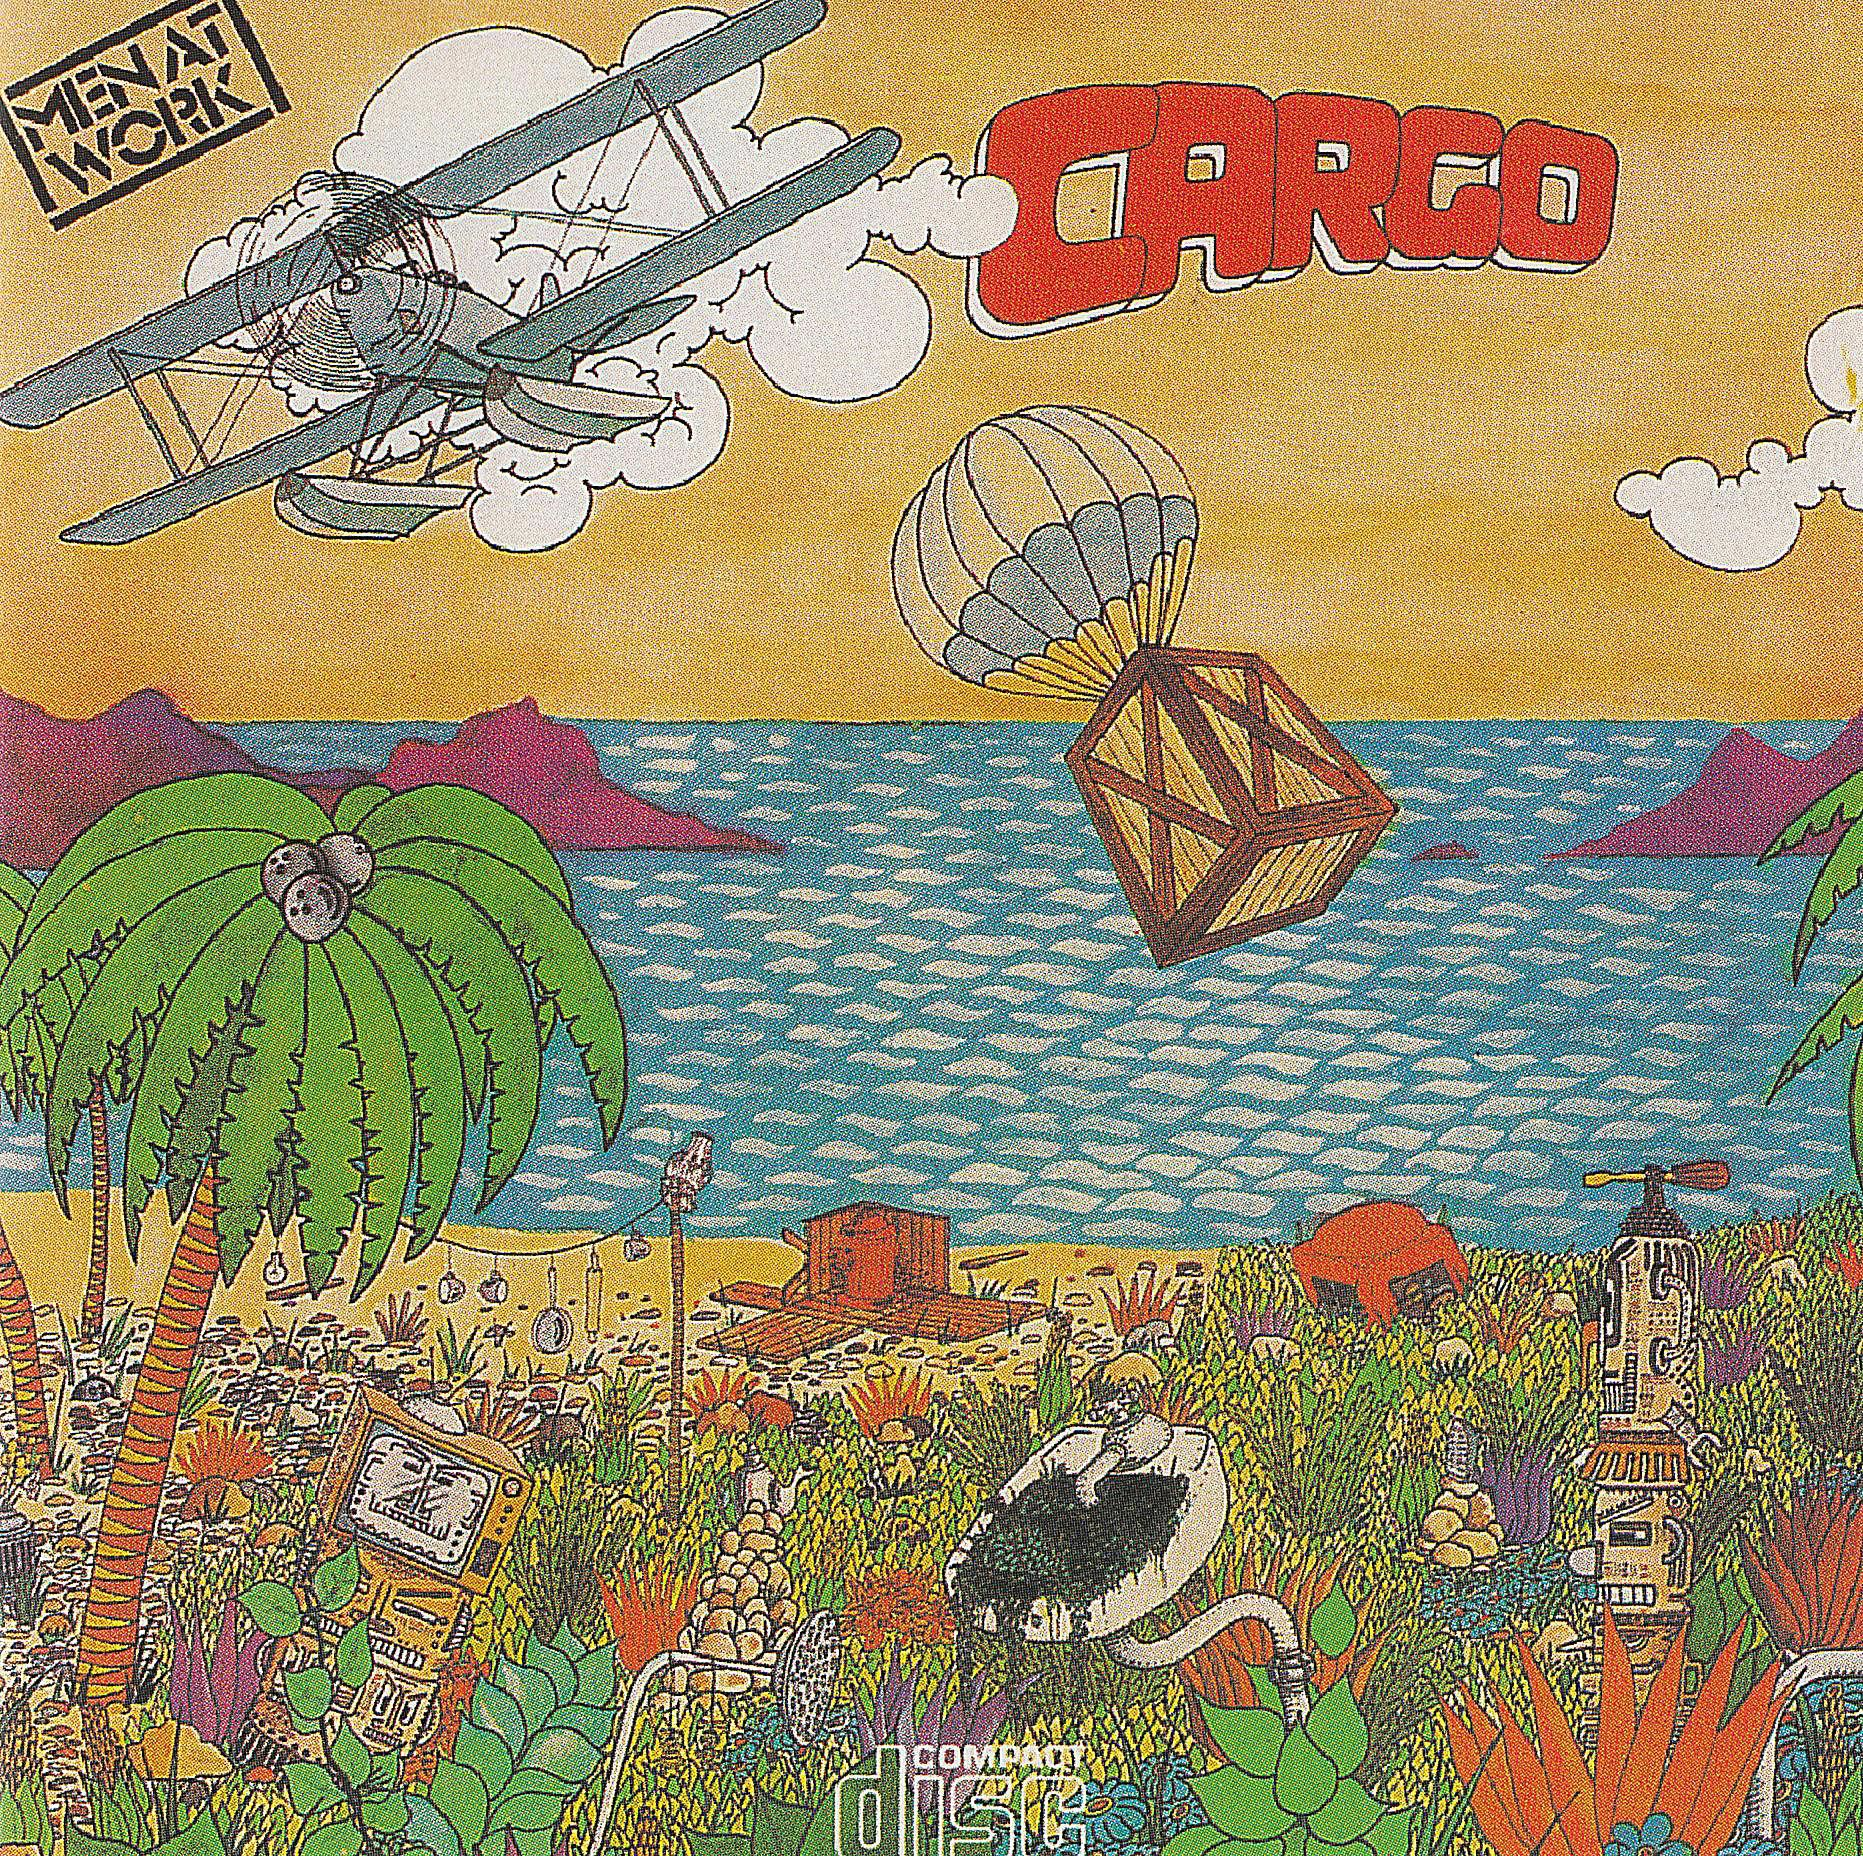 Men at Work did not suffer from the proverbial sophomore slump in any way regarding the band's second album, 1983's 'Cargo.'